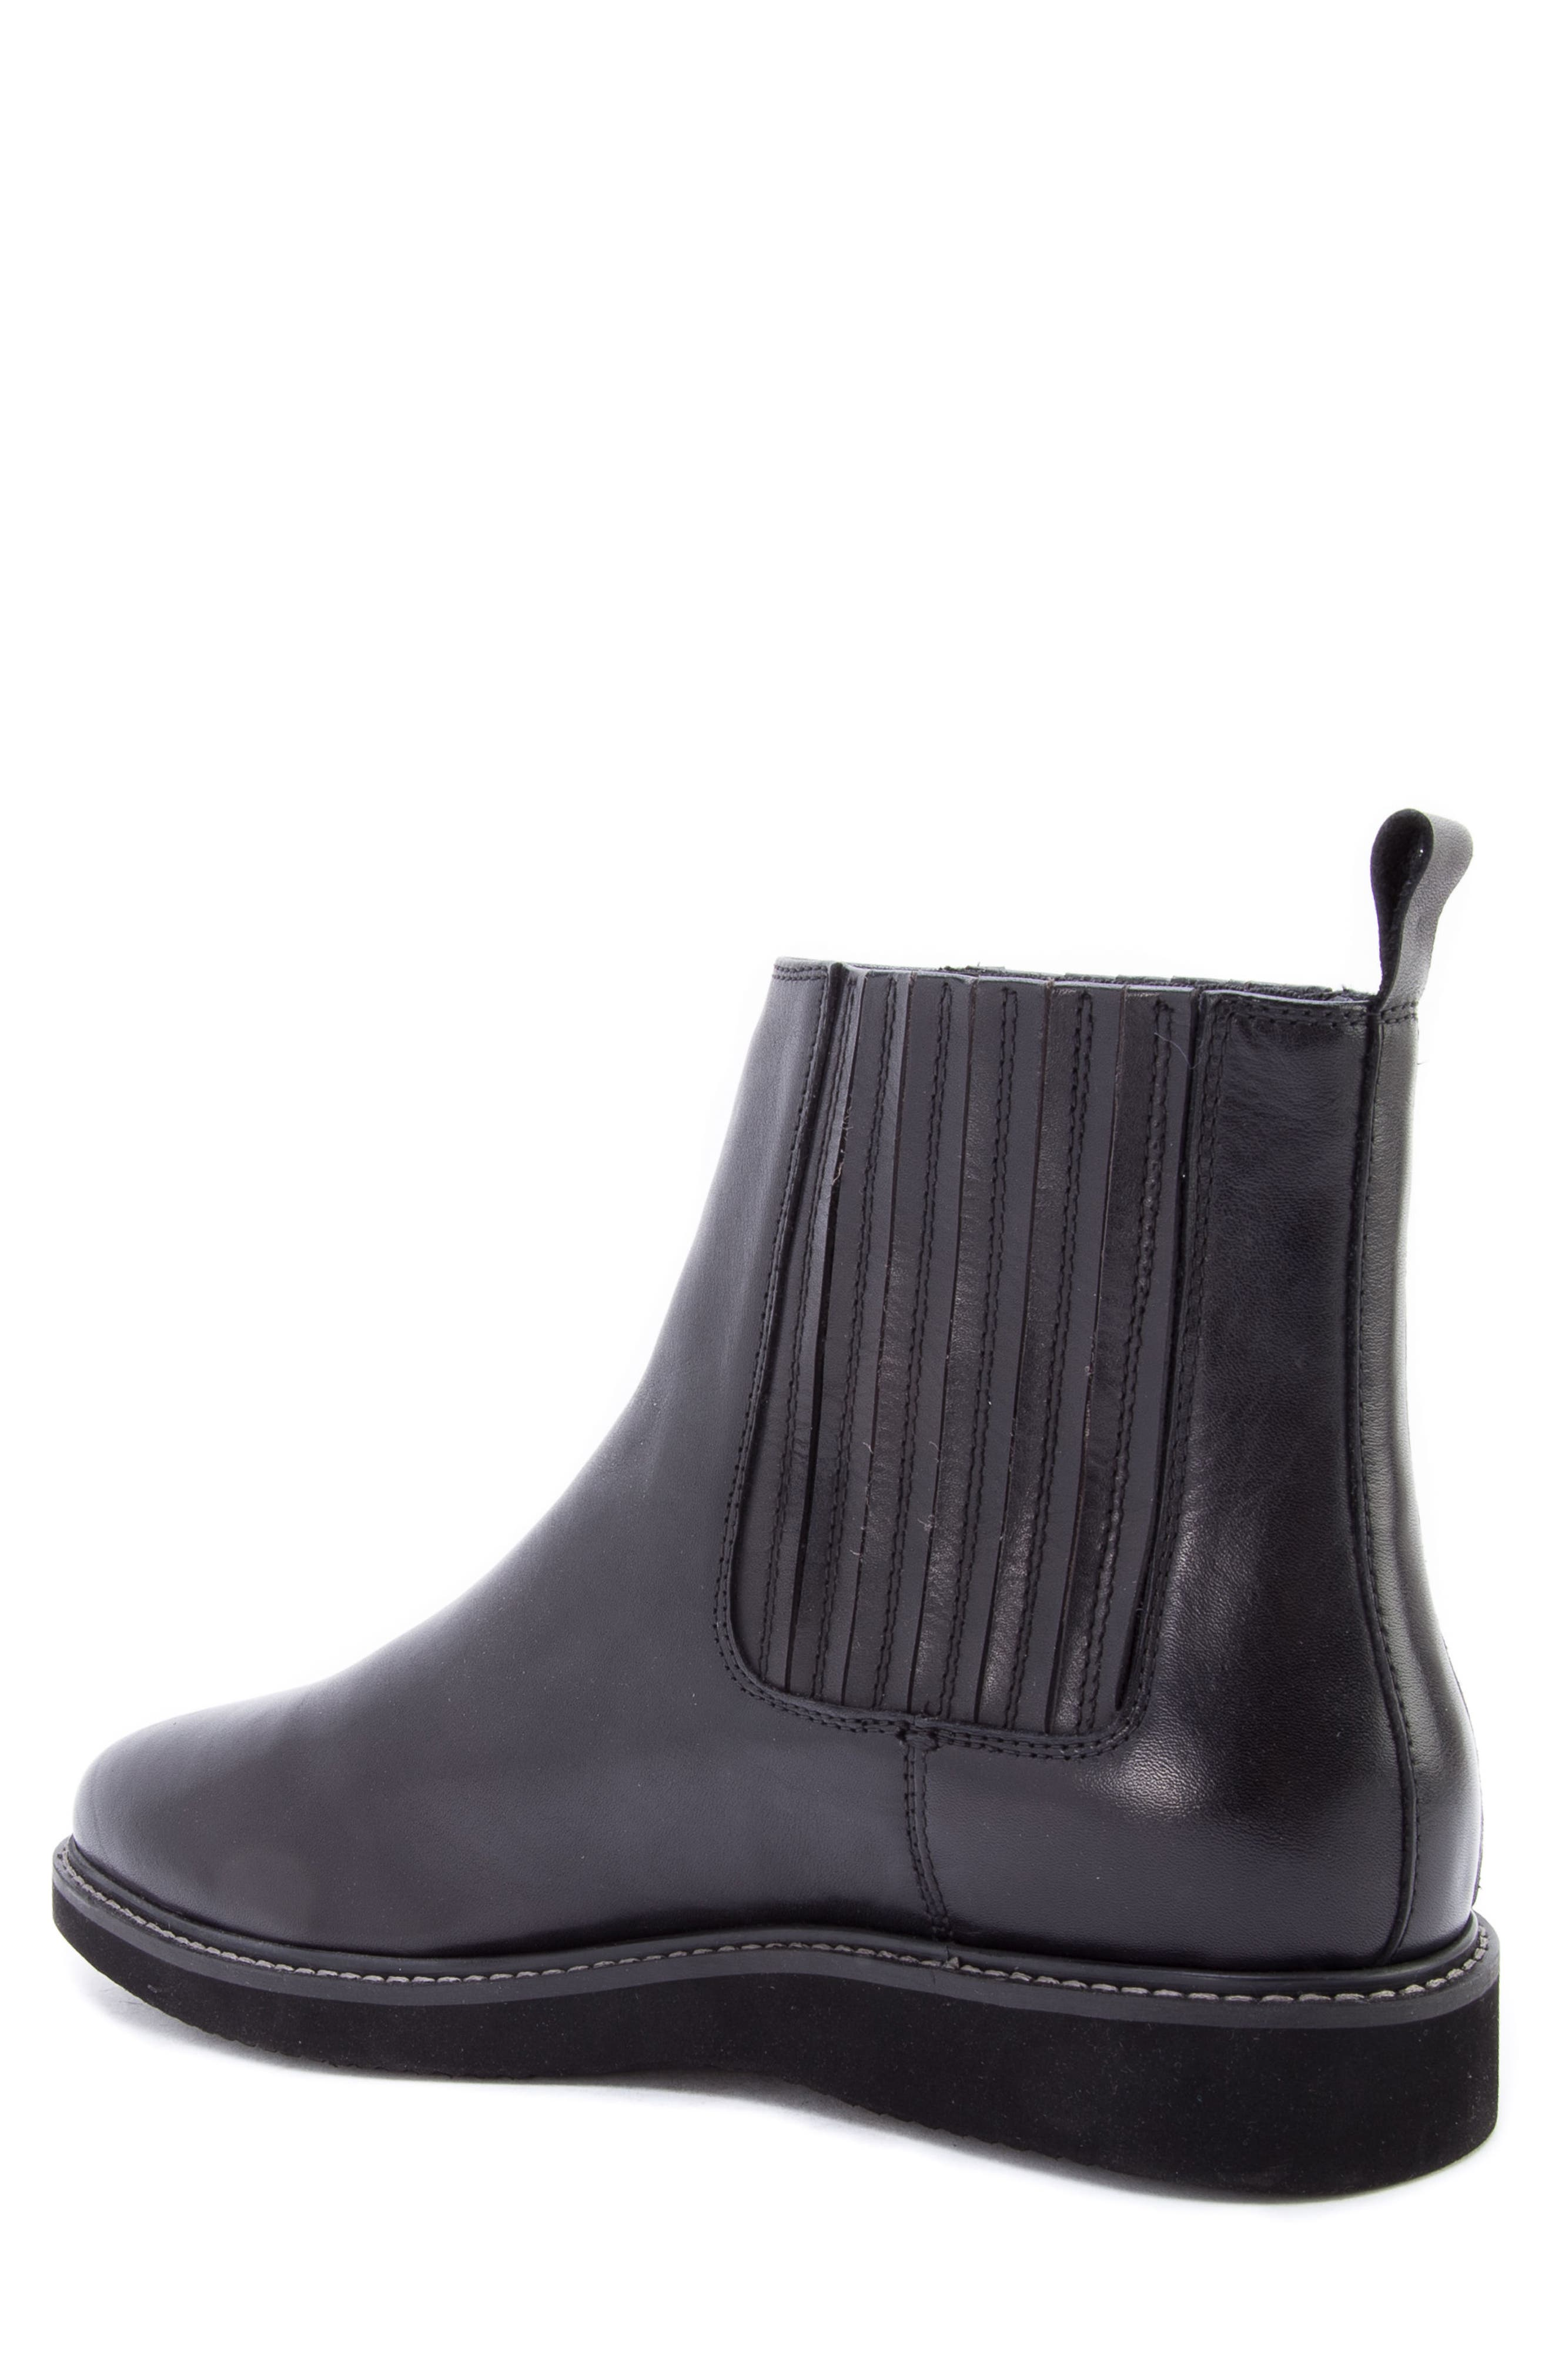 Warlow Chelsea Boot,                             Alternate thumbnail 2, color,                             BLACK LEATHER